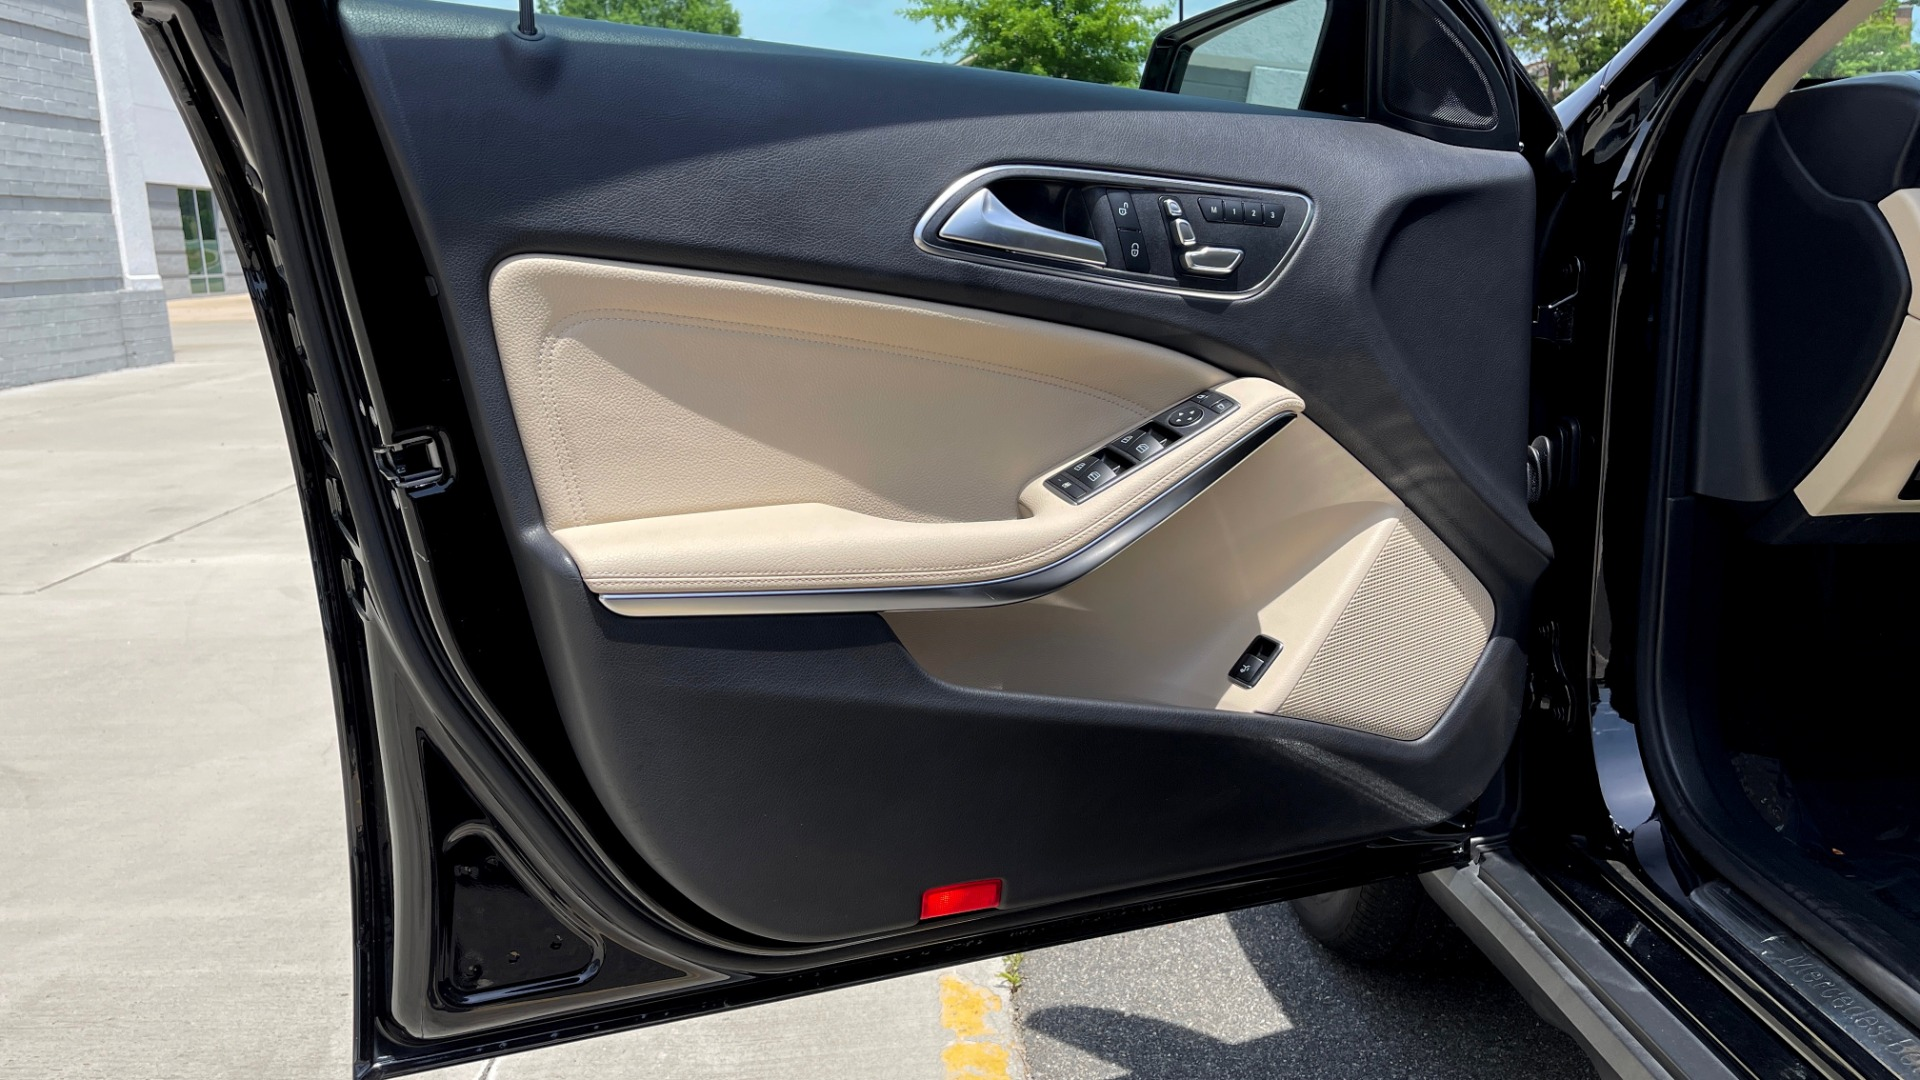 Used 2018 Mercedes-Benz GLA 250 4MATIC SUV / PANO-ROOF / HTD STS / BLIND SPOT ASST / APPLE for sale $31,995 at Formula Imports in Charlotte NC 28227 29